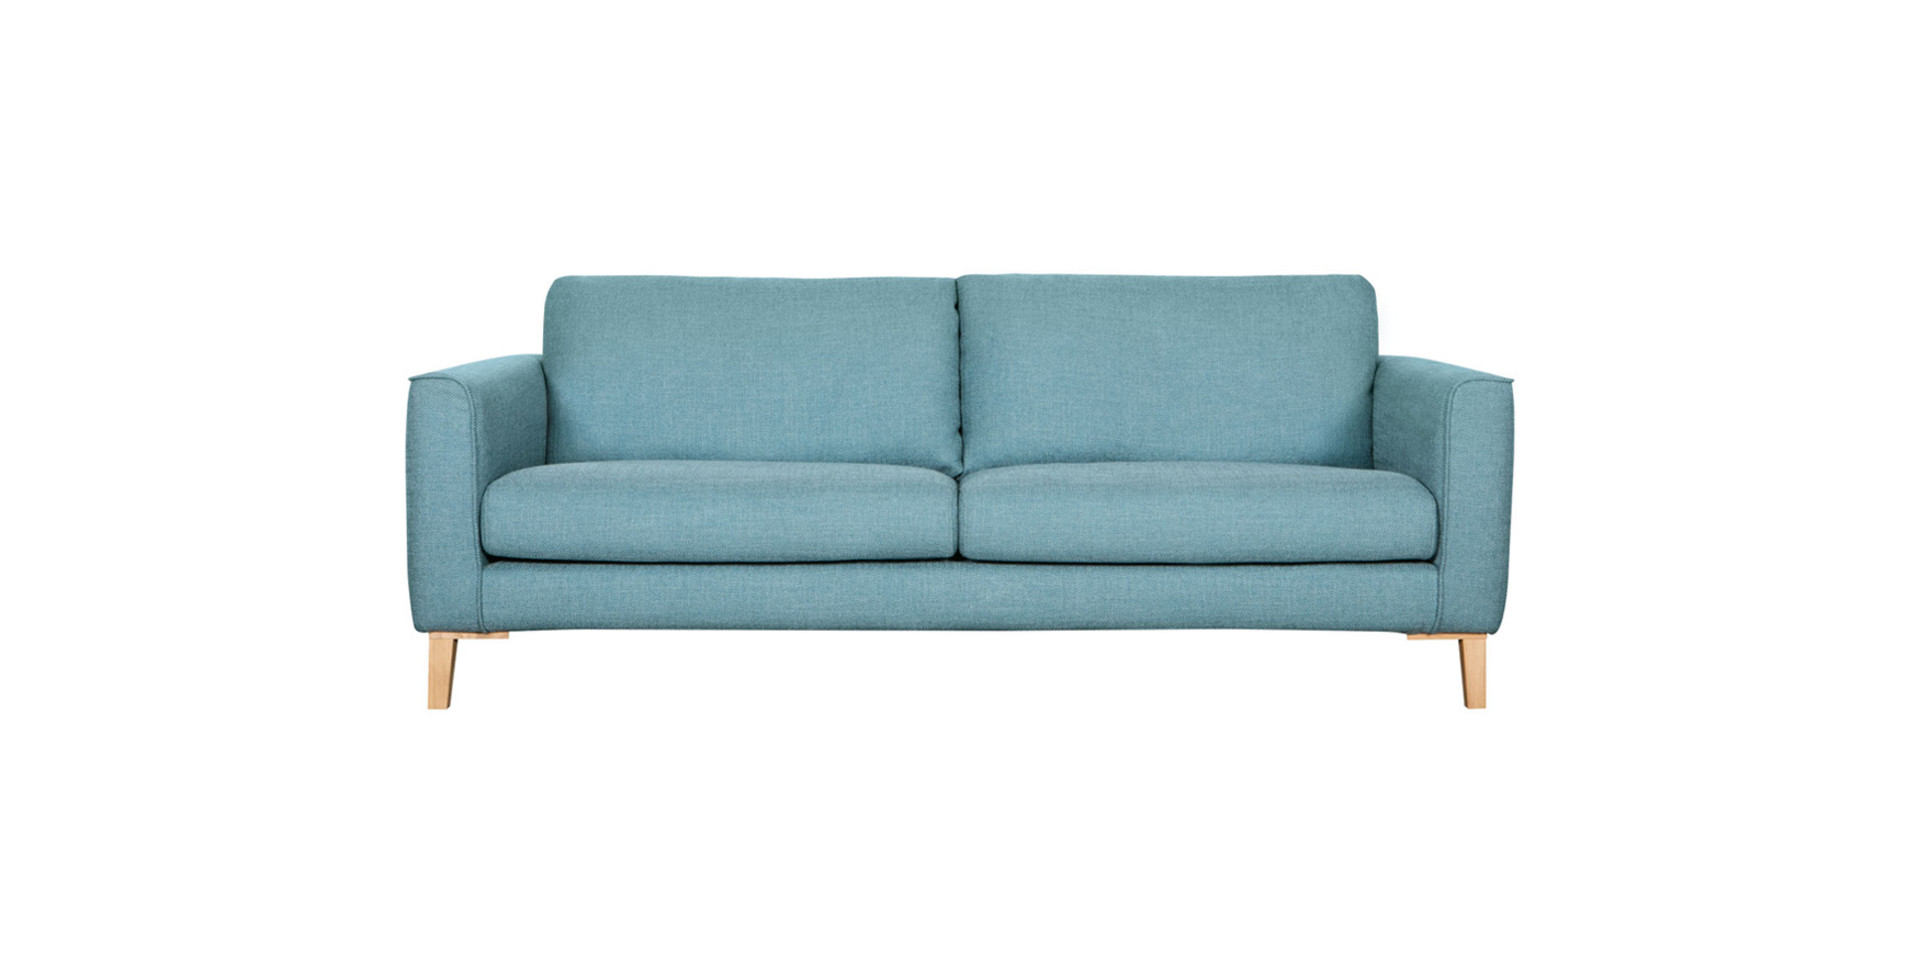 sits-ronja-canape-3seater_bermuda8_turquoise_1